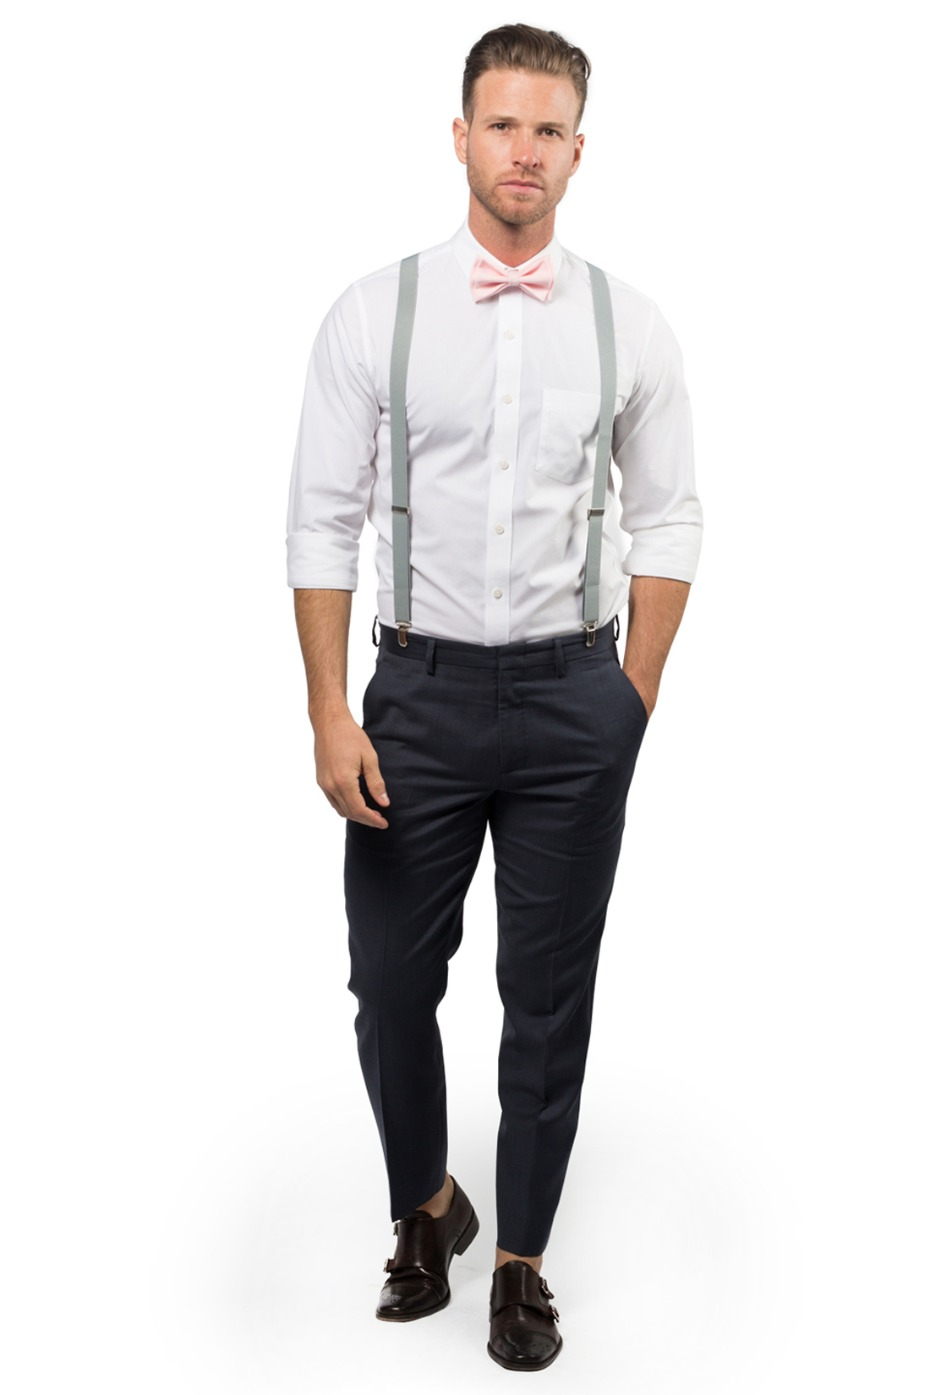 Armoniia Light Gray Suspenders and Blush Bow Tie